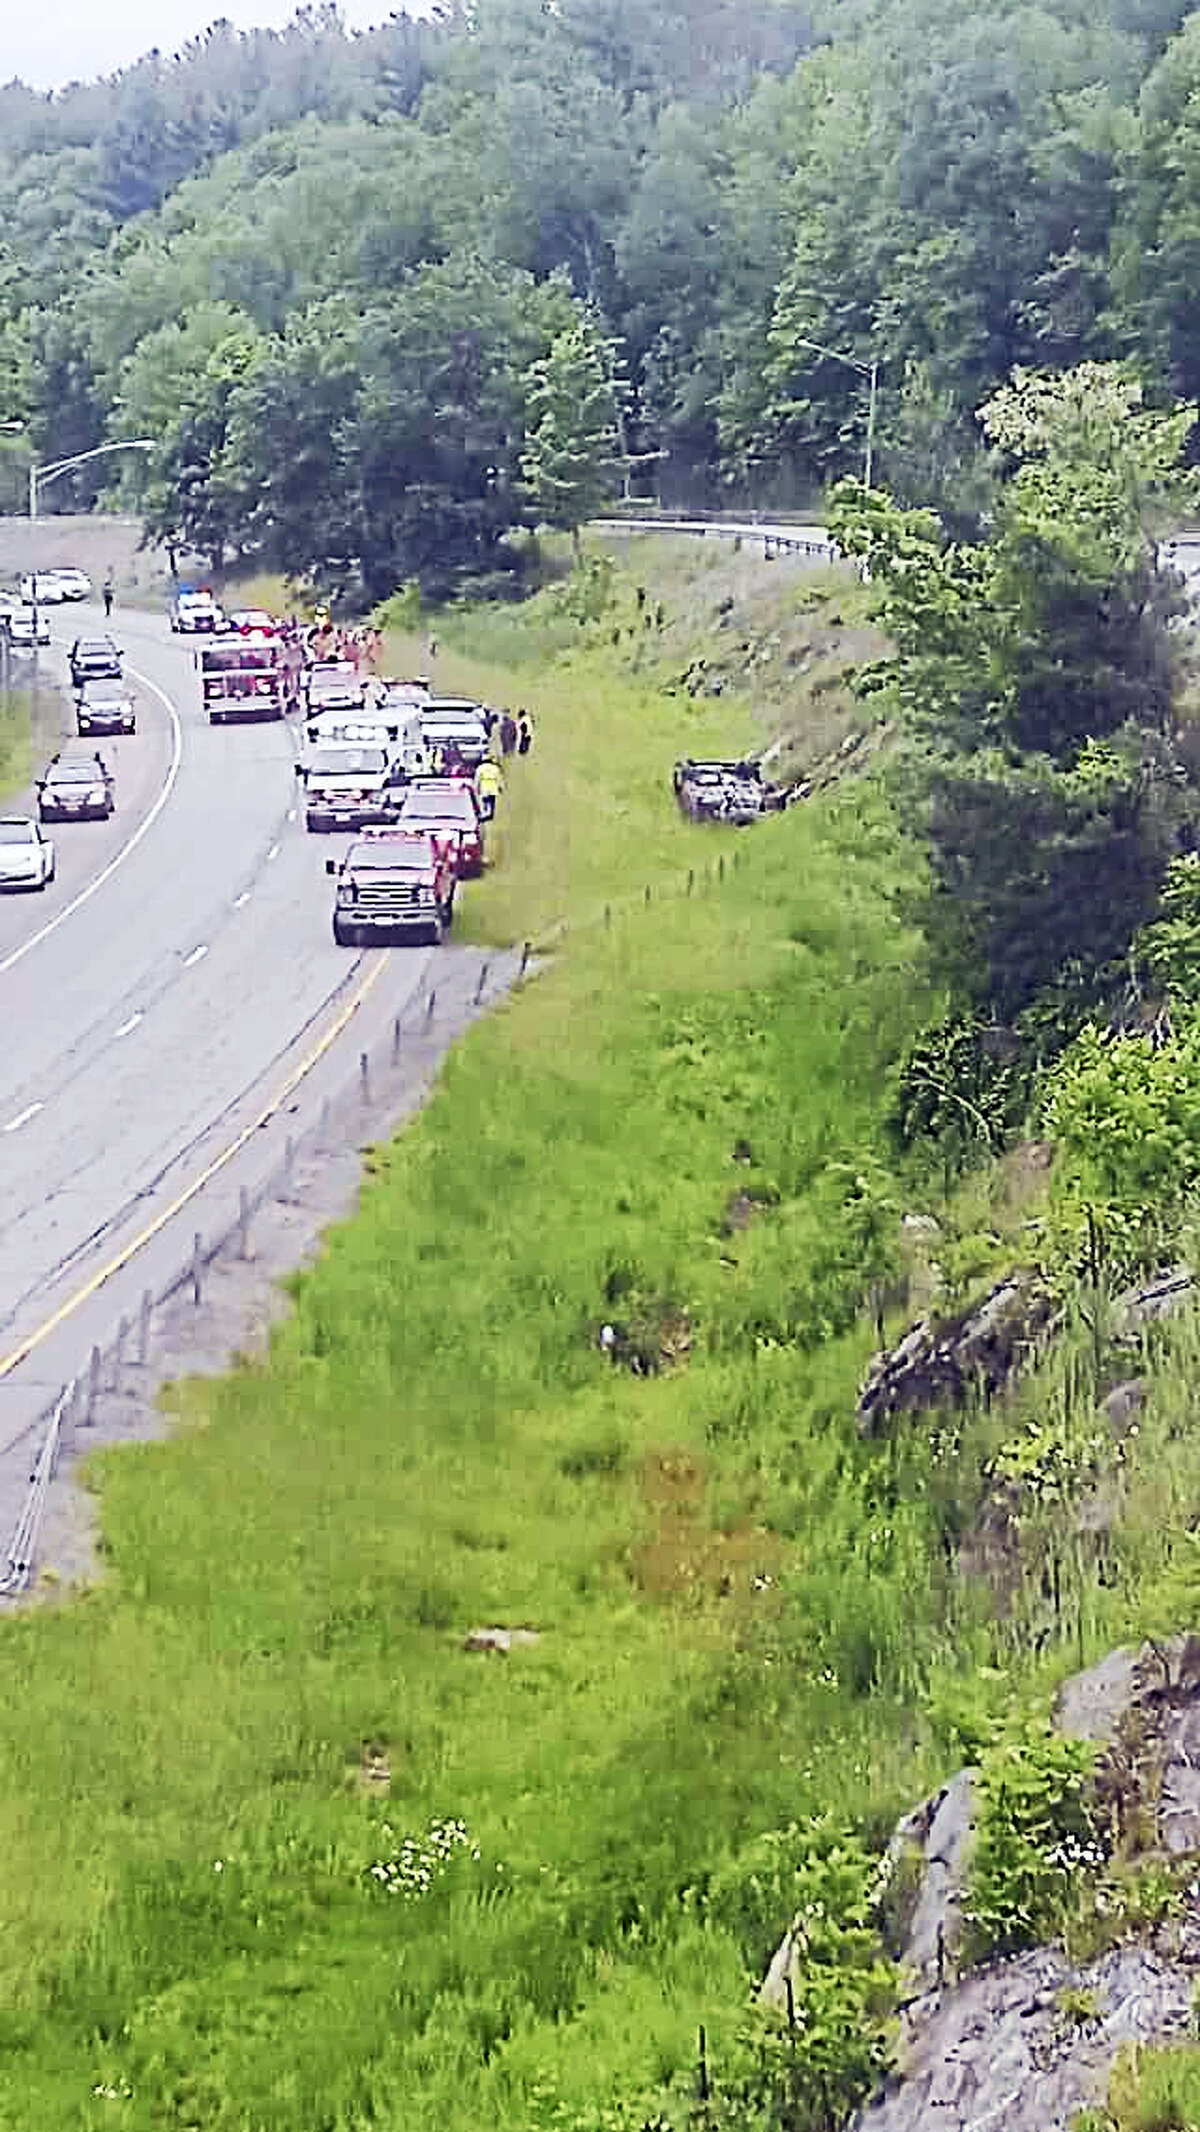 Photos by Jon Thrall A rollover accident was reported on Route 8 south near the Torrington/Harwinton town line on Tuesday afternoon.